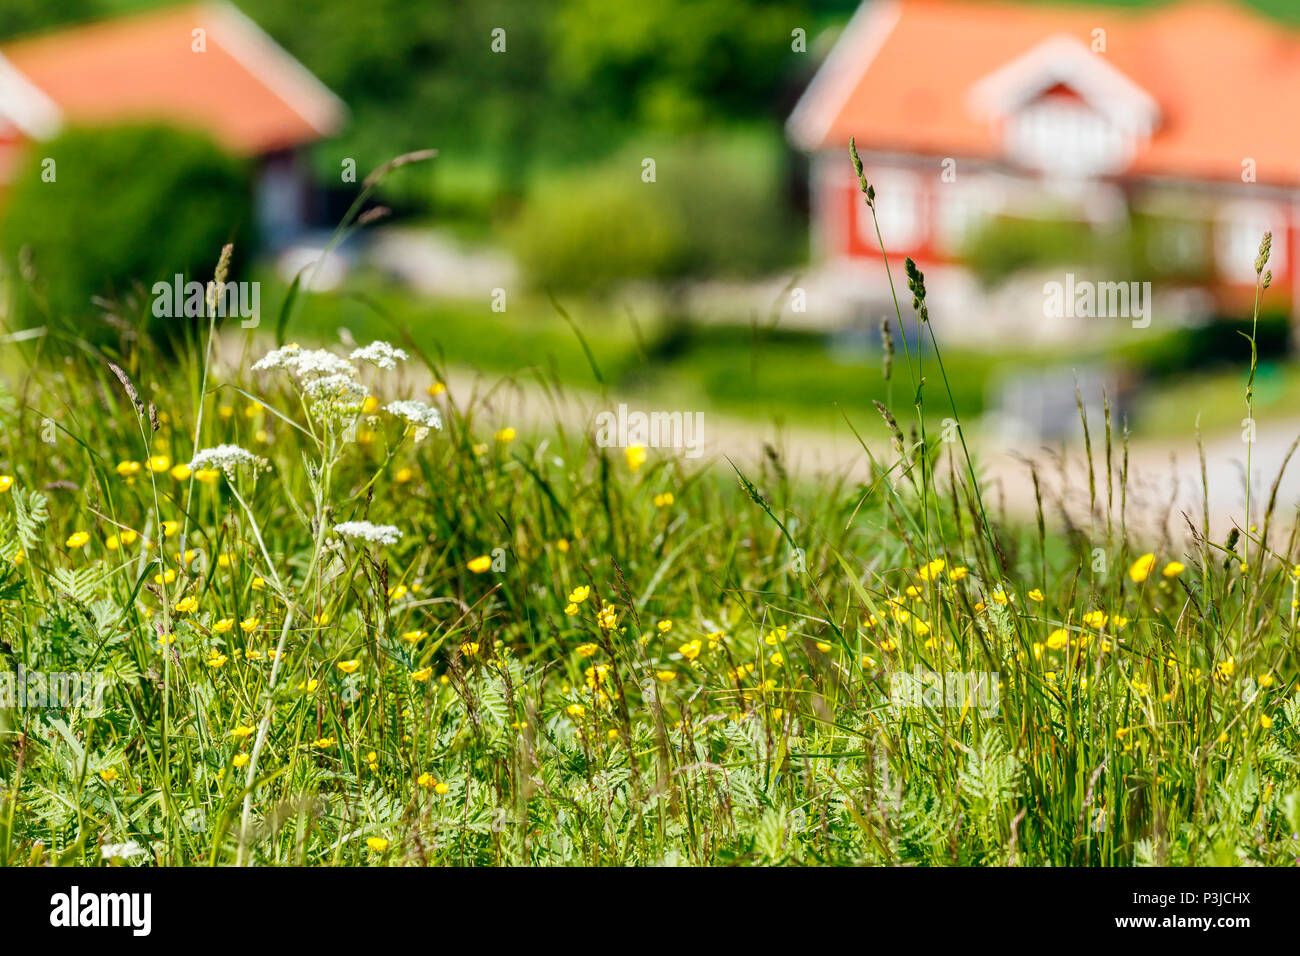 Summer flowers on a meadow with houses in the background - Stock Image